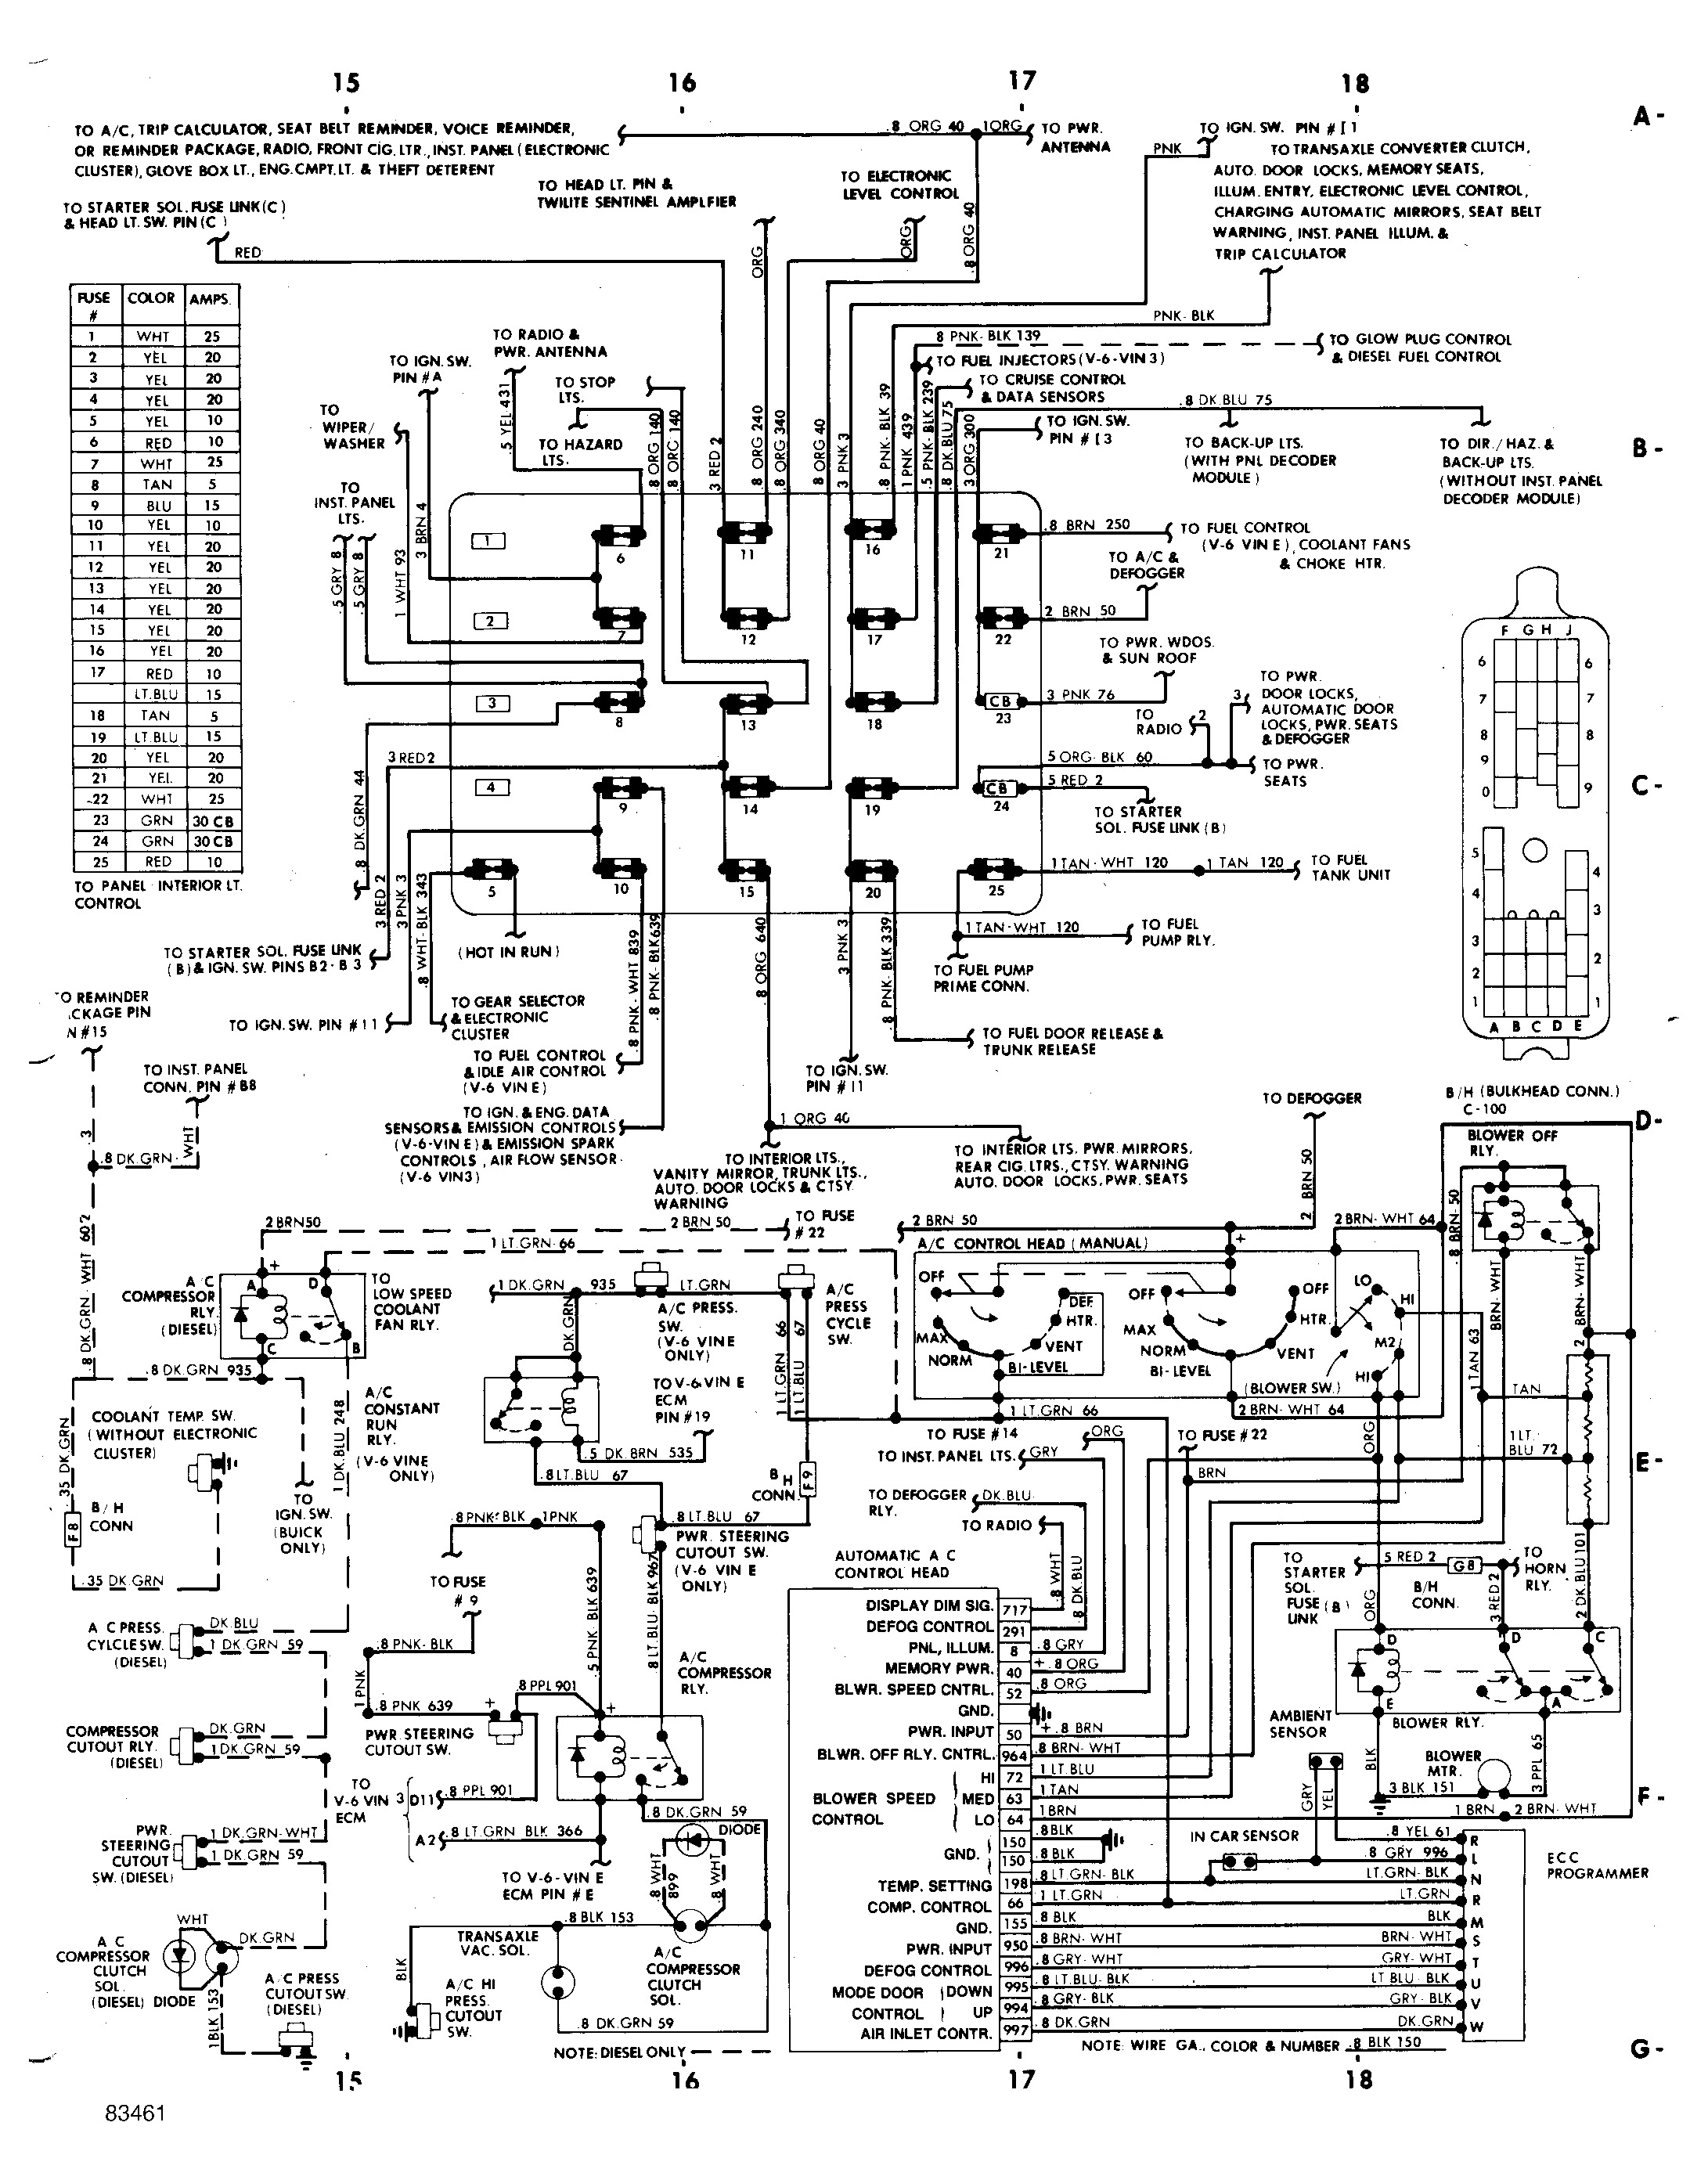 1994 plymouth acclaim radio wiring diagram plymouth acclaim radio wiring diagram